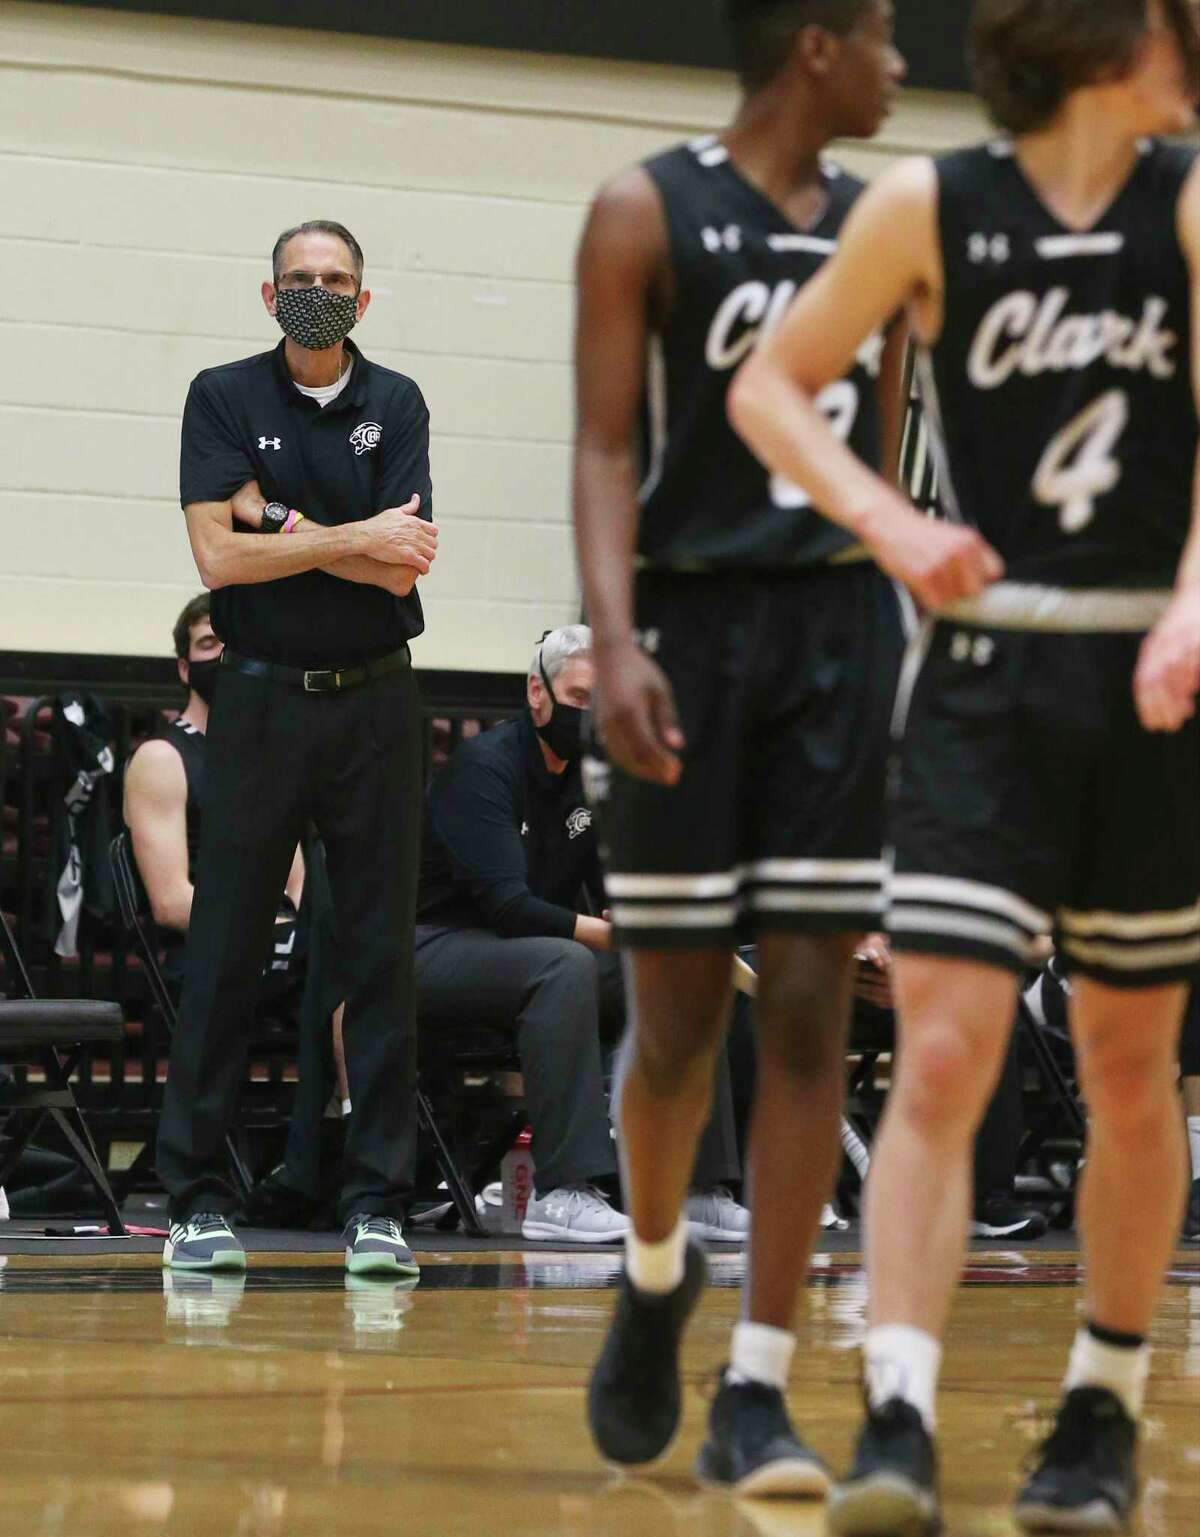 Clark basketball coach Steve Sylestine keeps an eye on his players against Johnson during their 28-6A playoff seeding basketball game at Littleton Gym on Friday, Feb. 12, 2021. Clark defeated Johnson, 69-62, to move on.